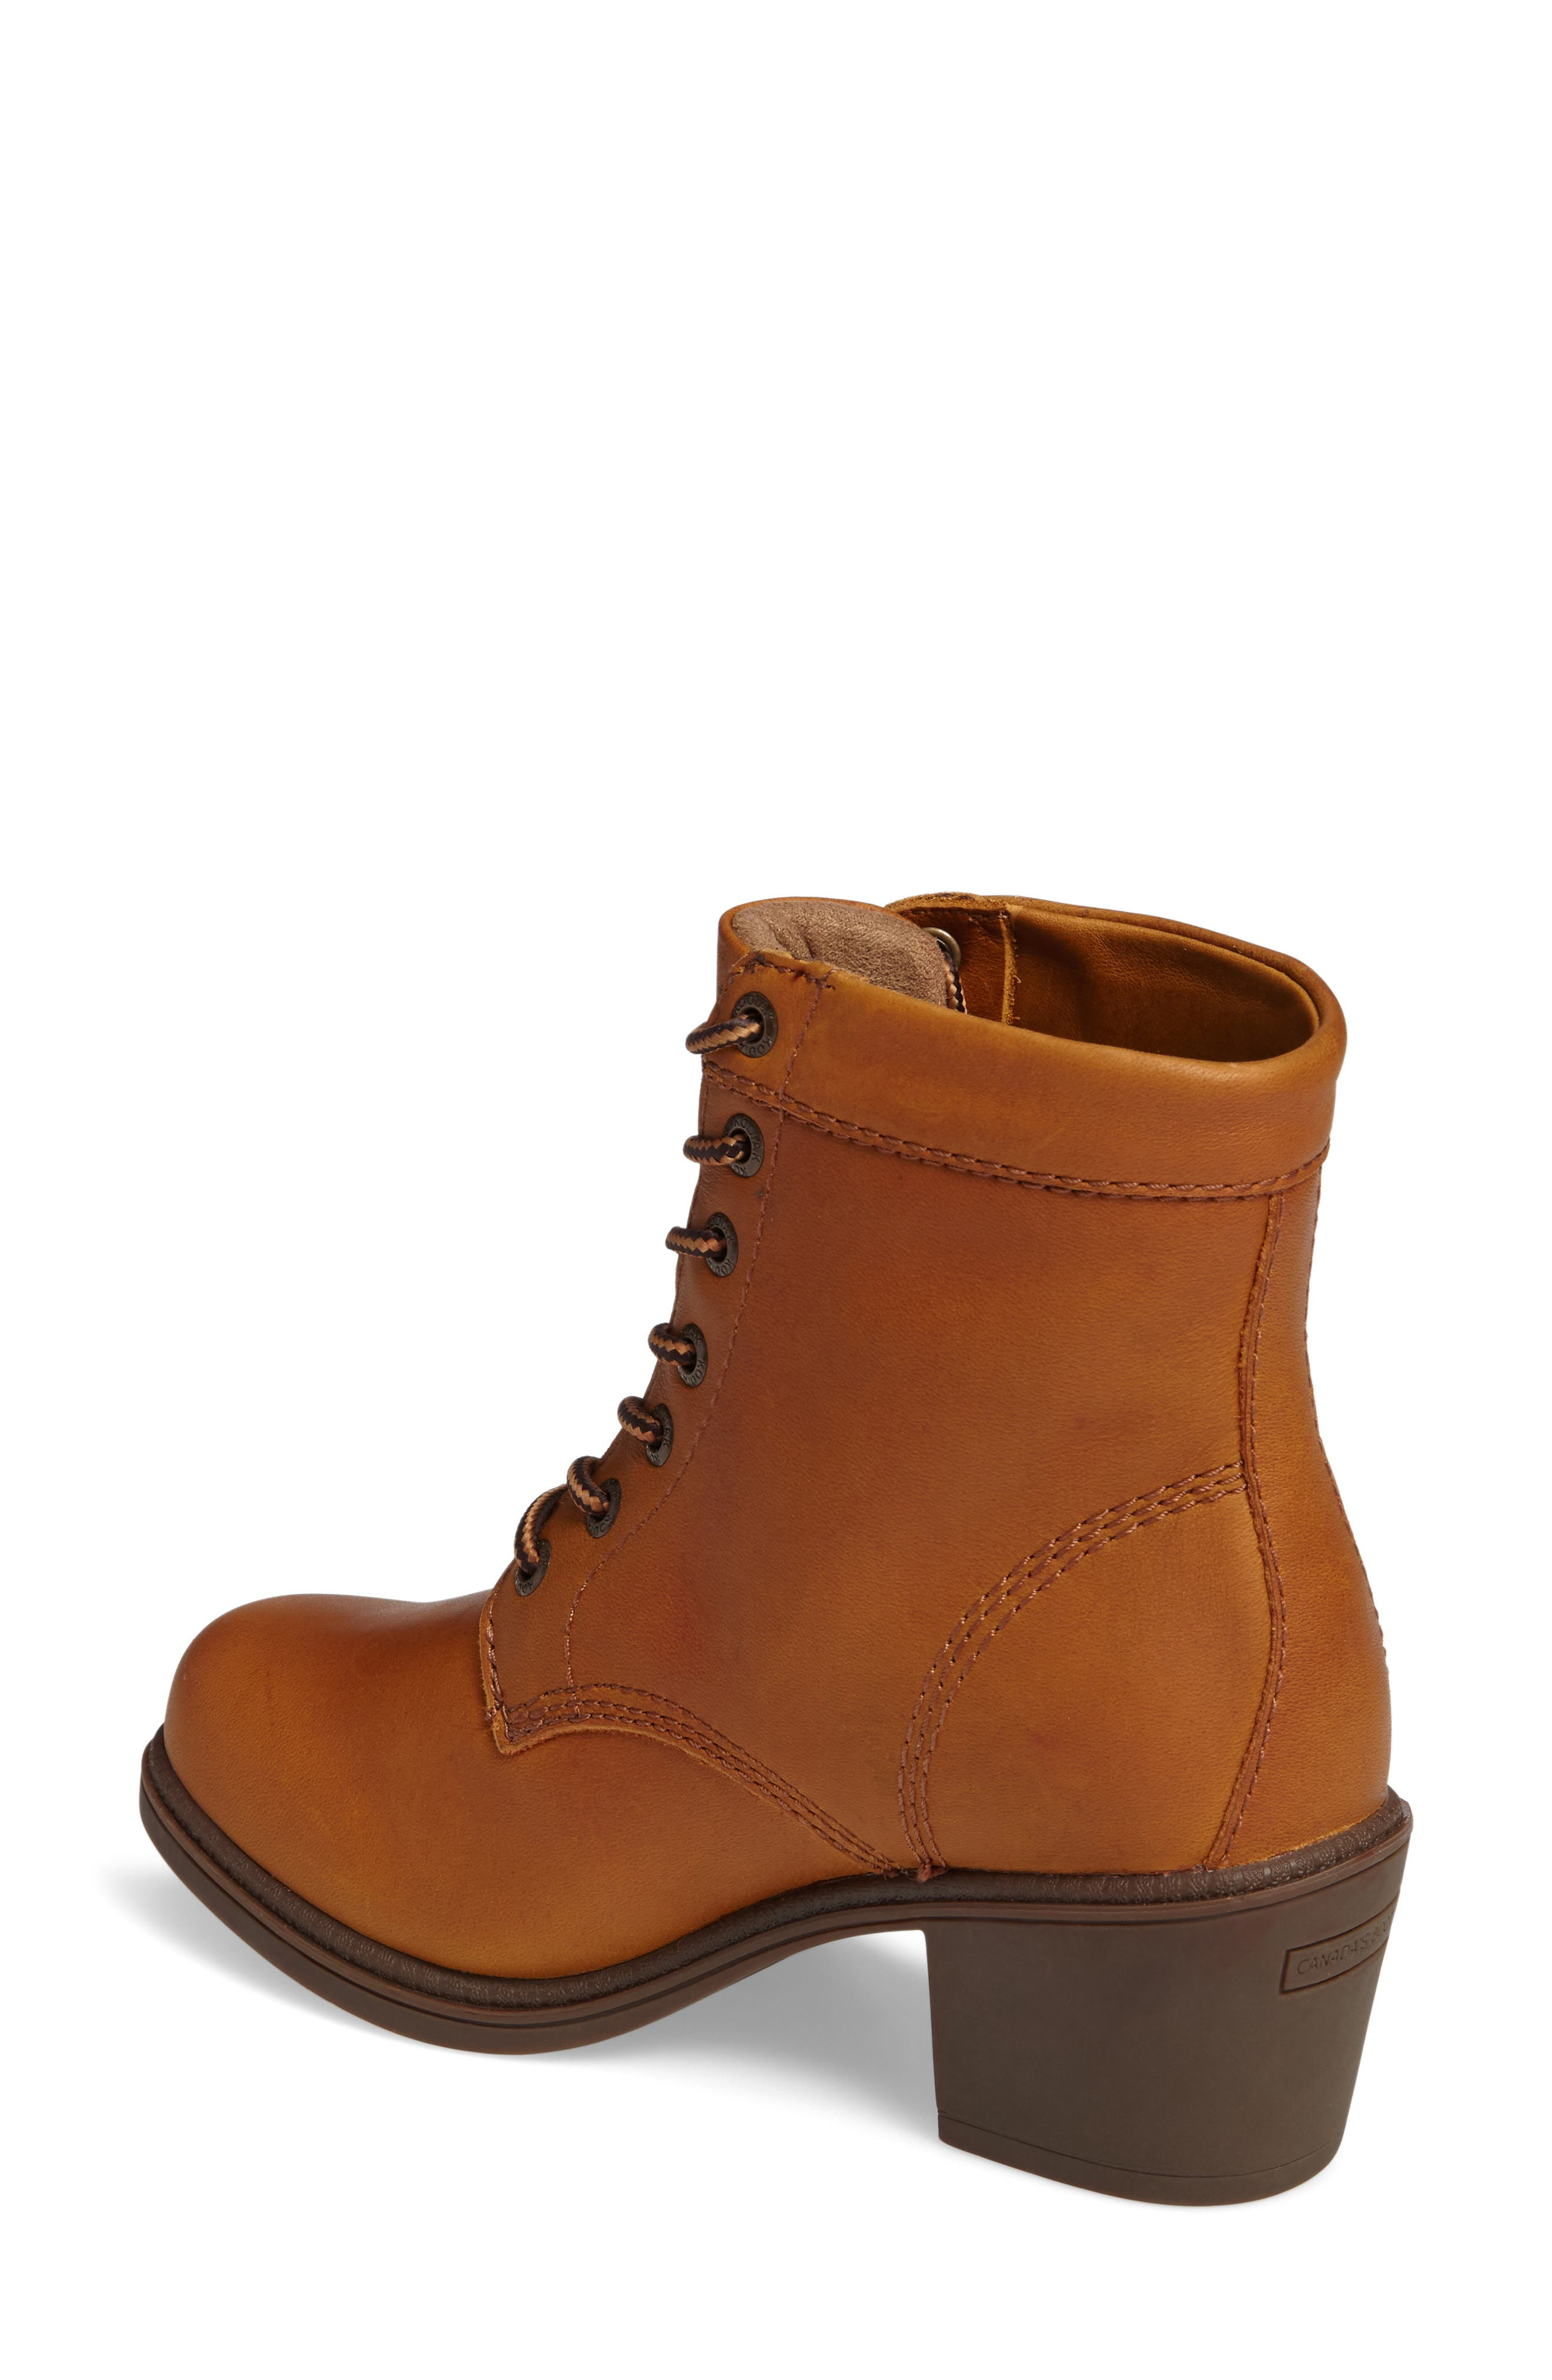 Claire Waterproof Bootie,                             Alternate thumbnail 2, color,                             Caramel Leather